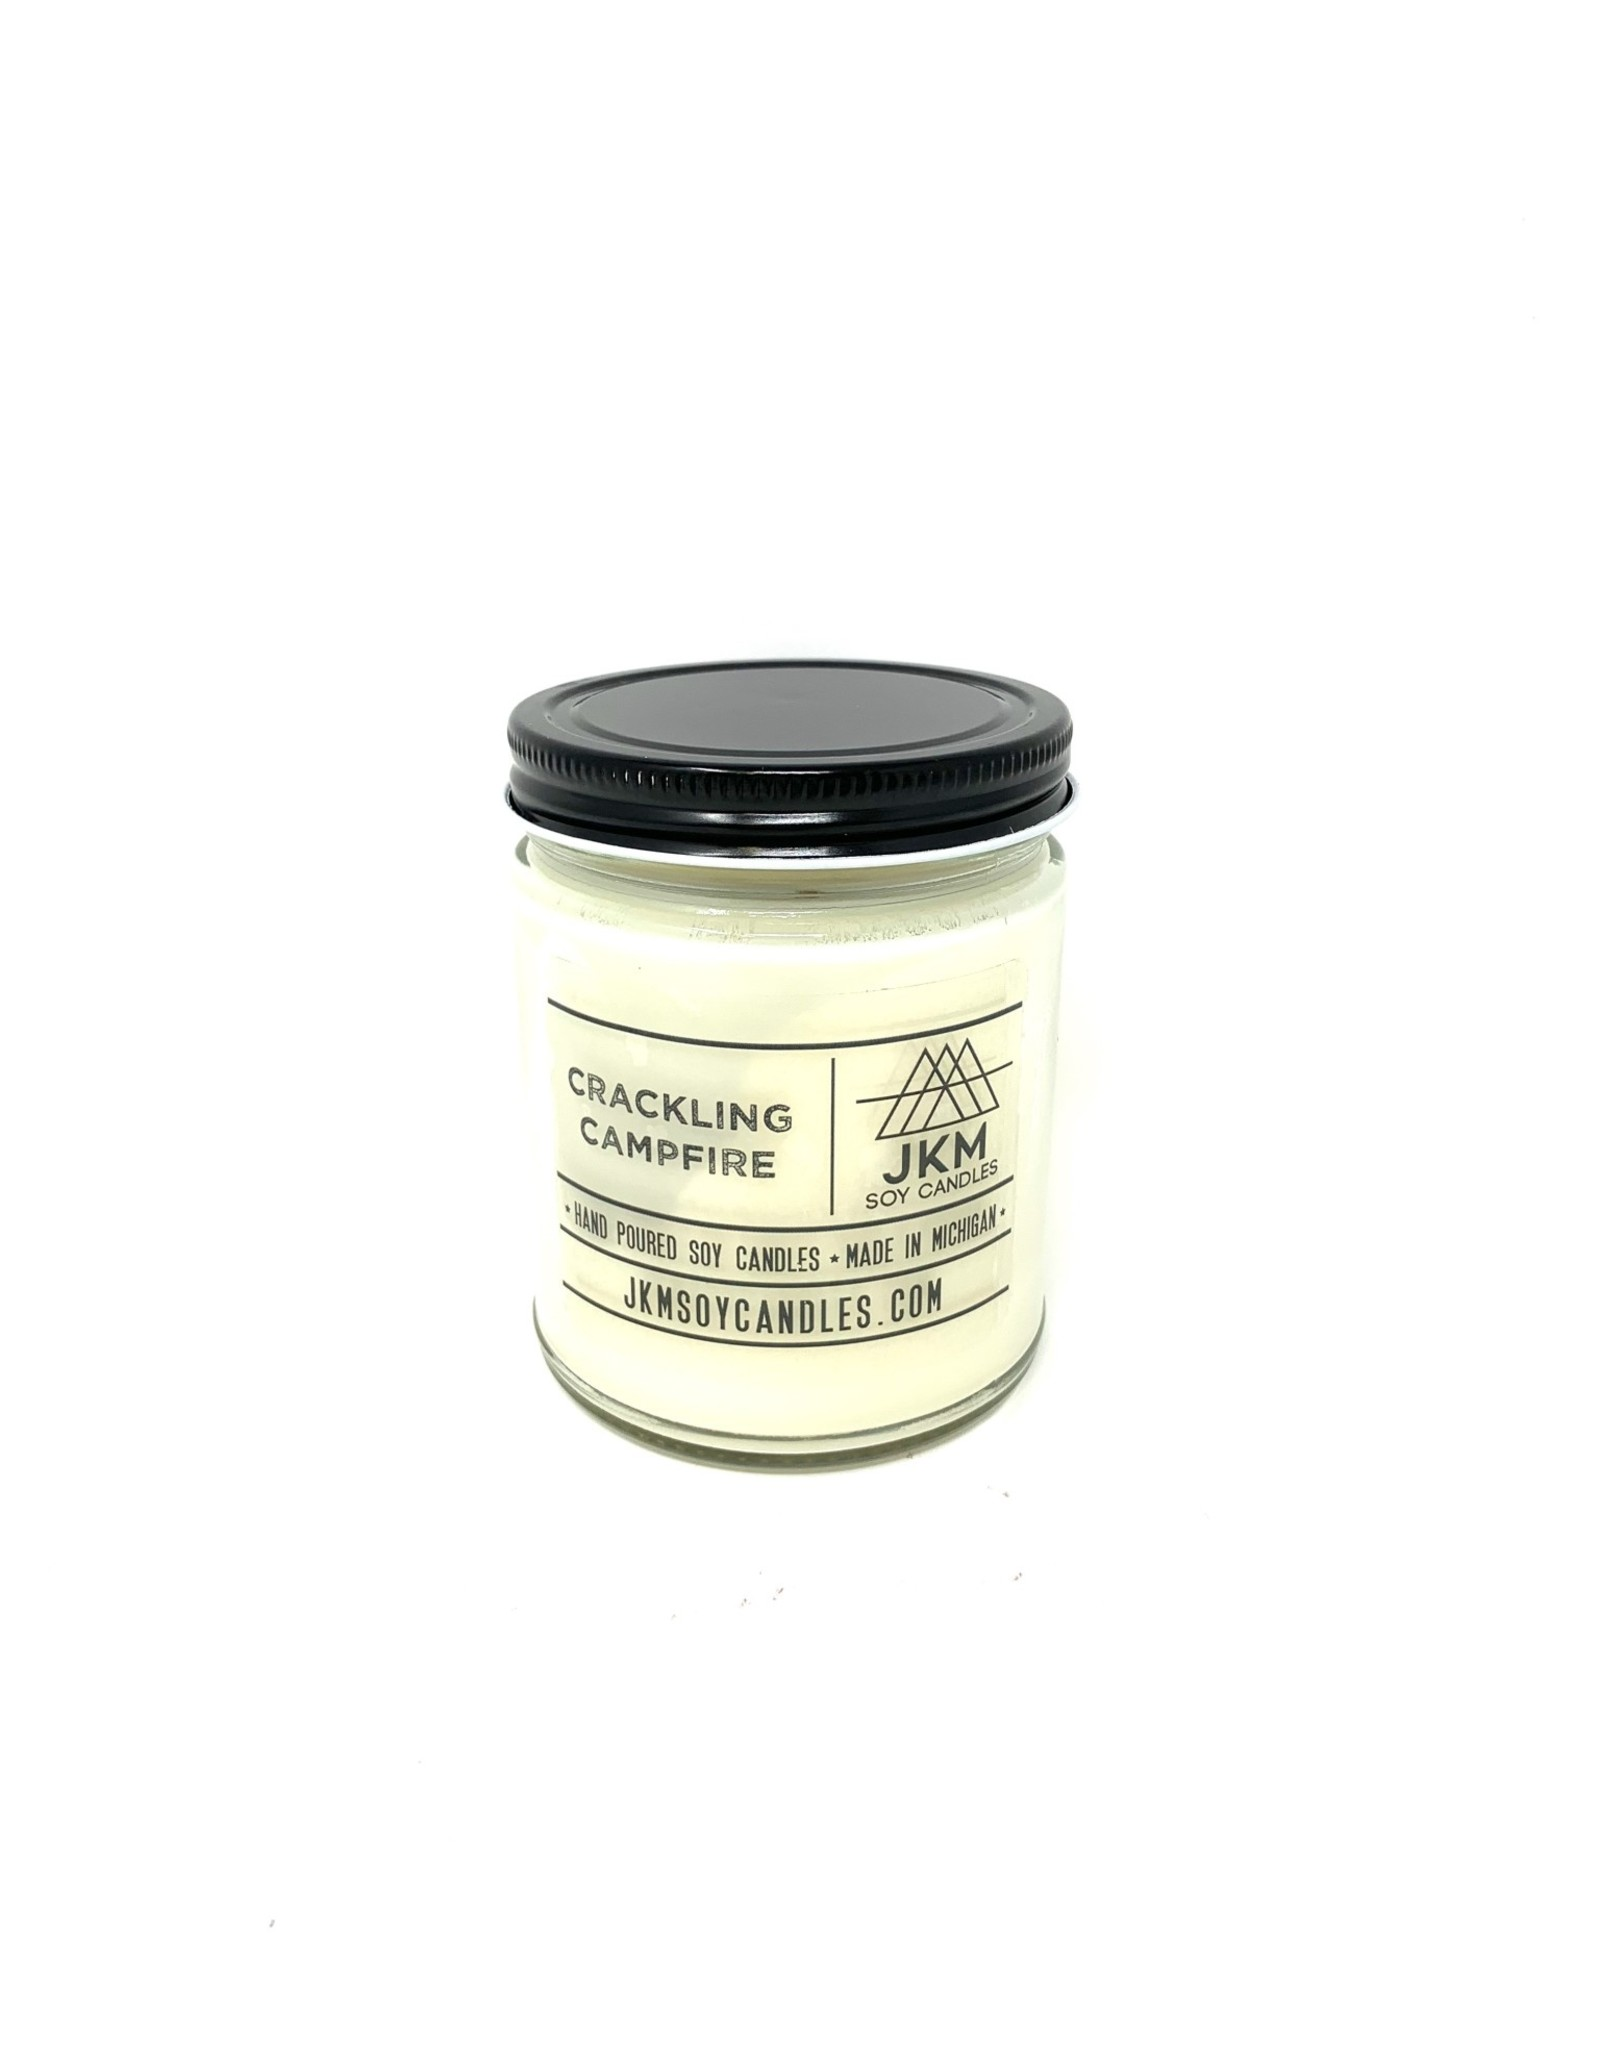 JKM Soy Candles Michigan Inspired Scents Candle Crackling Campfire